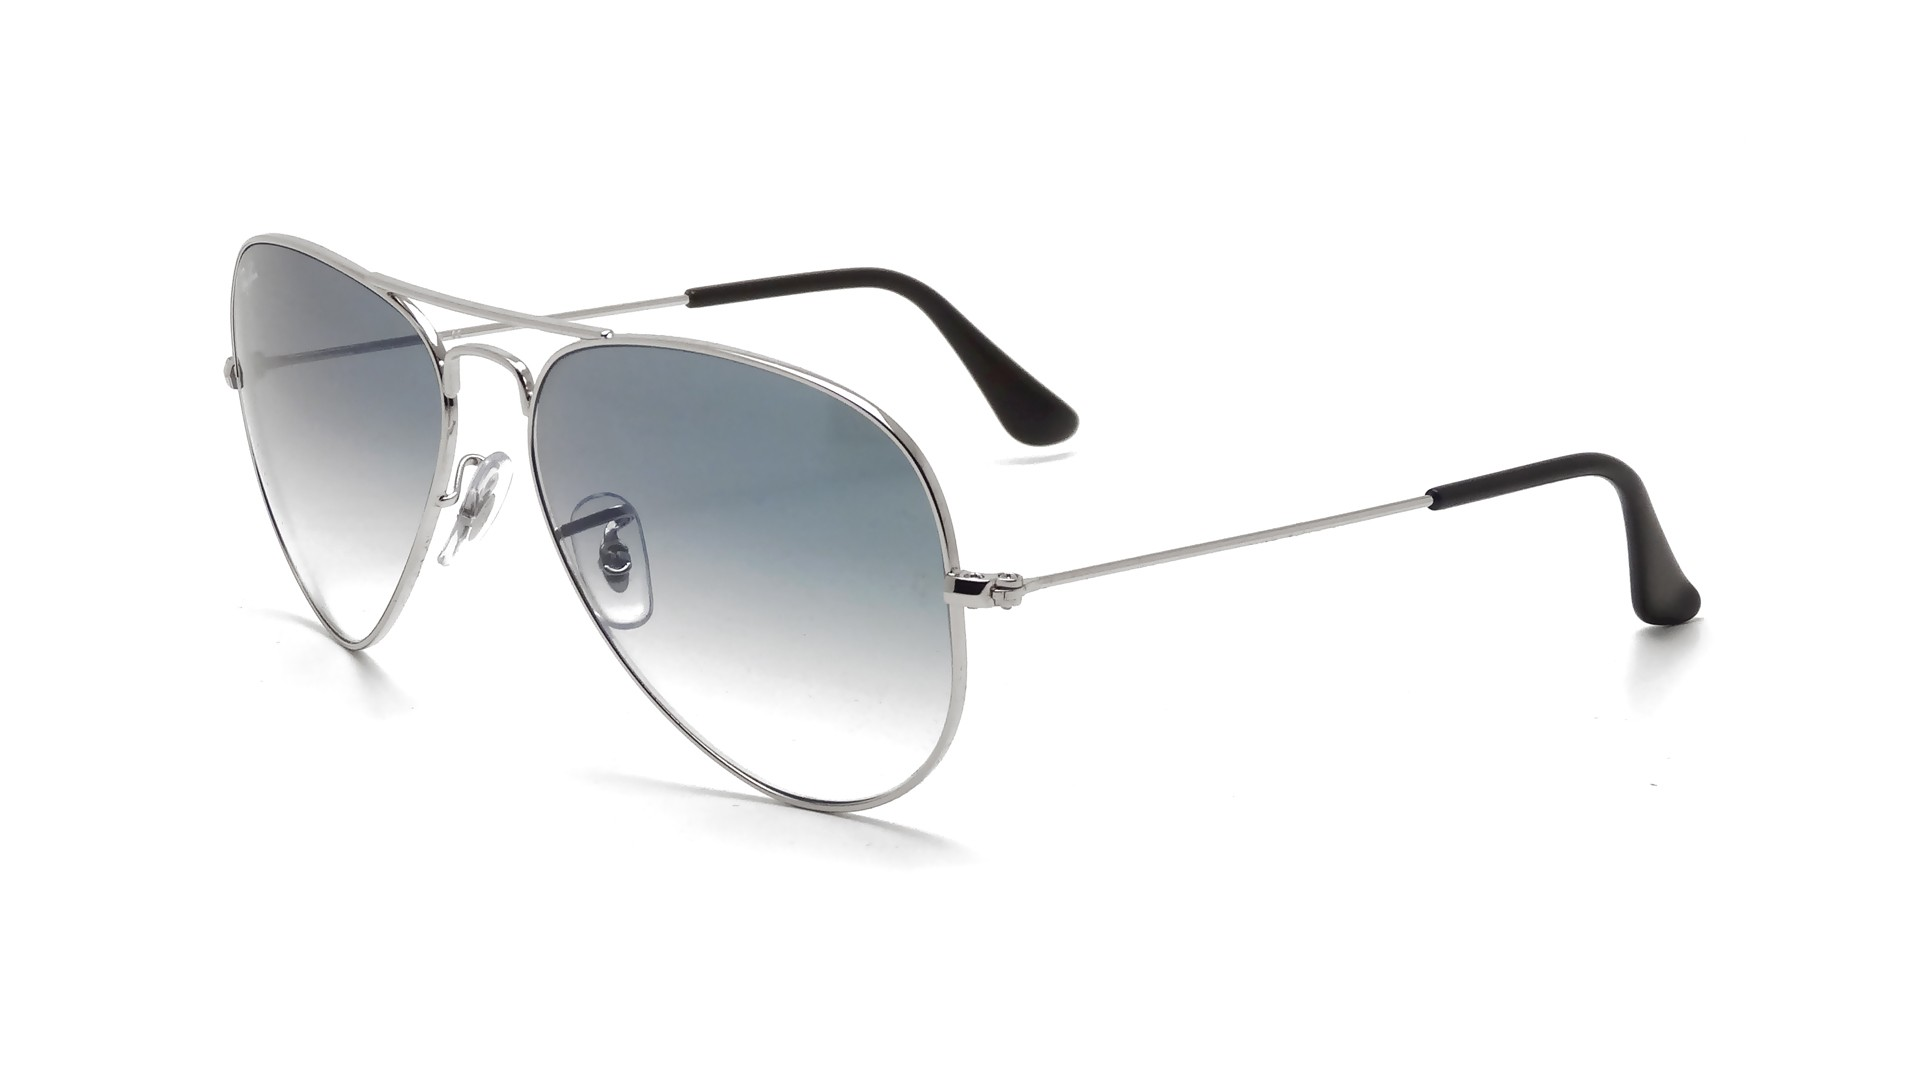 1eb69f60bf1 Sunglasses Ray-Ban Aviator Large Metal Silver RB3025 003 3F 55-14 Small  Gradient